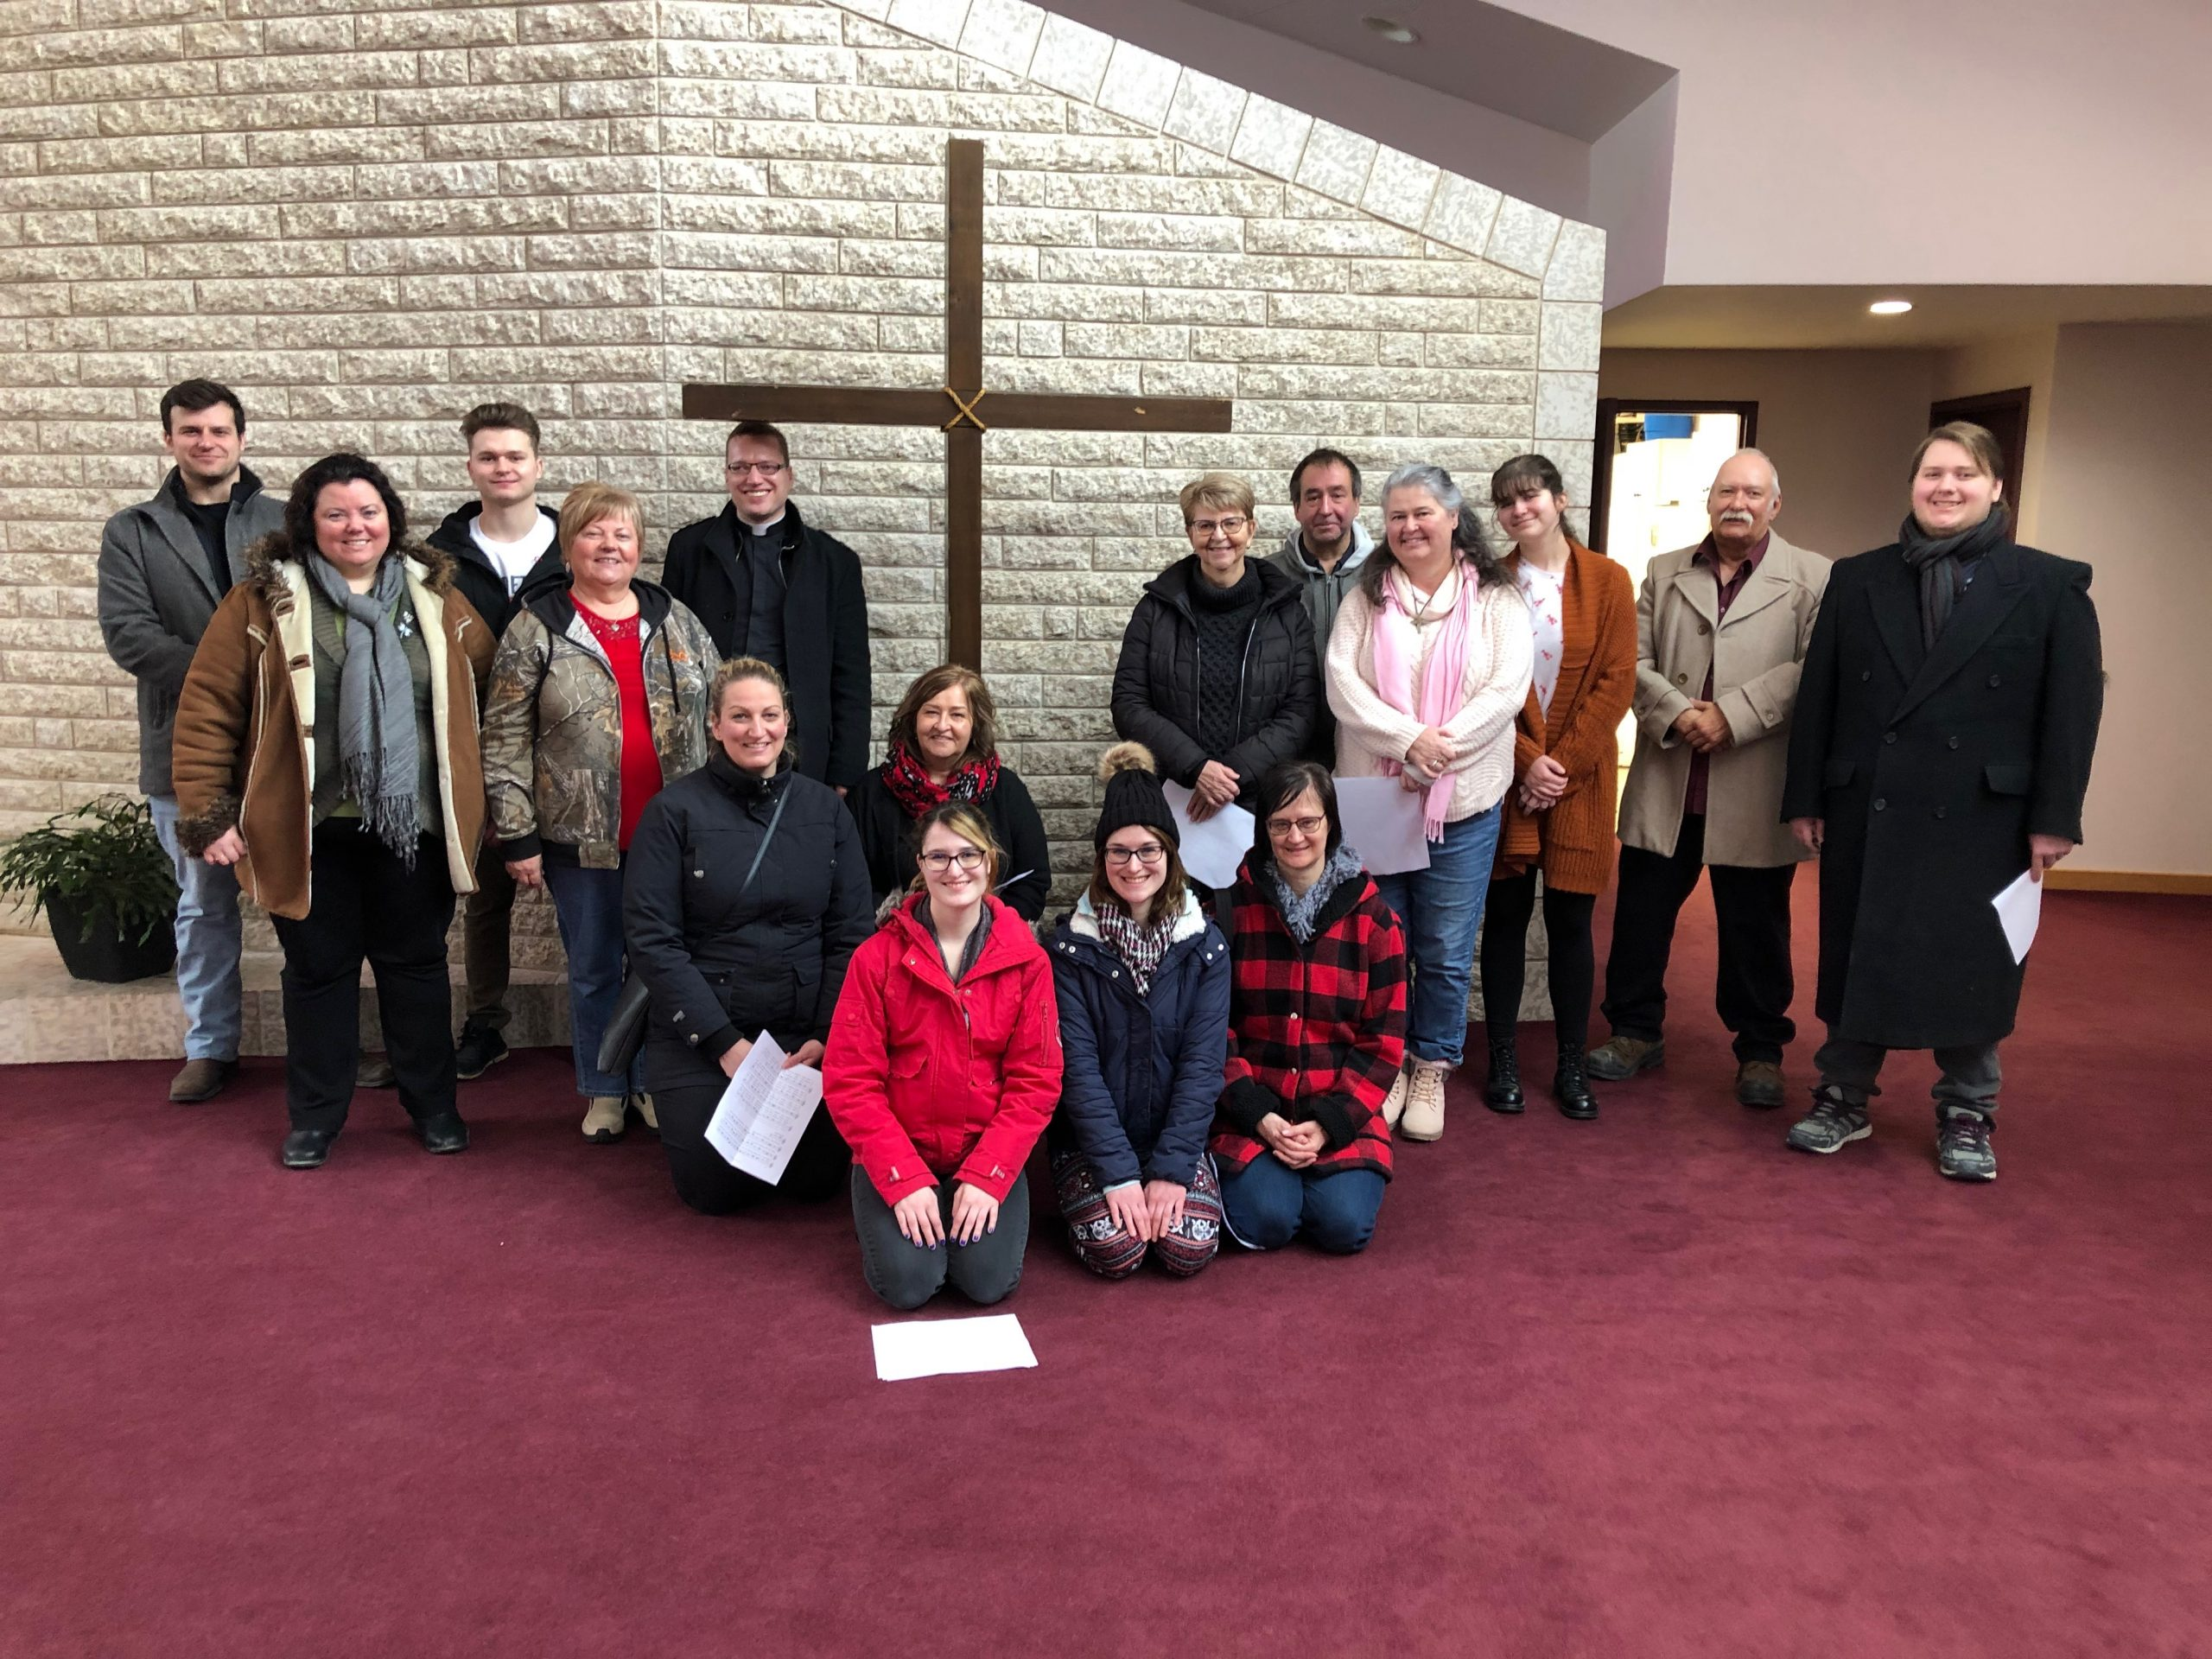 33rd Annual Public Way of the Cross in the Archdiocese of Winnipeg